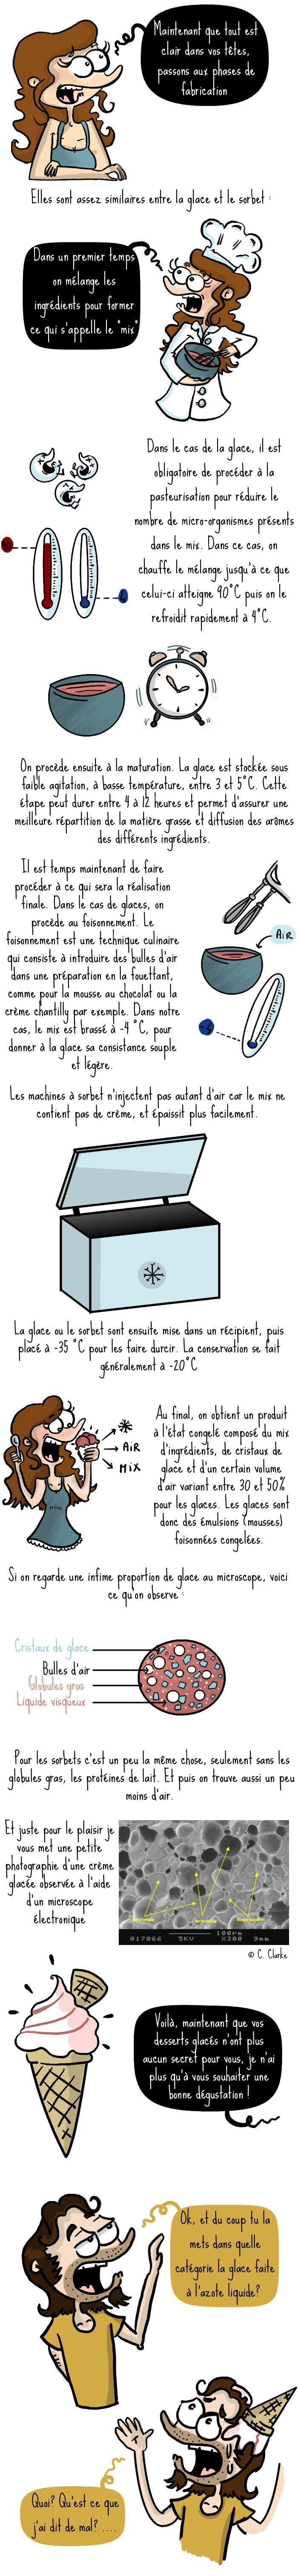 glace-2